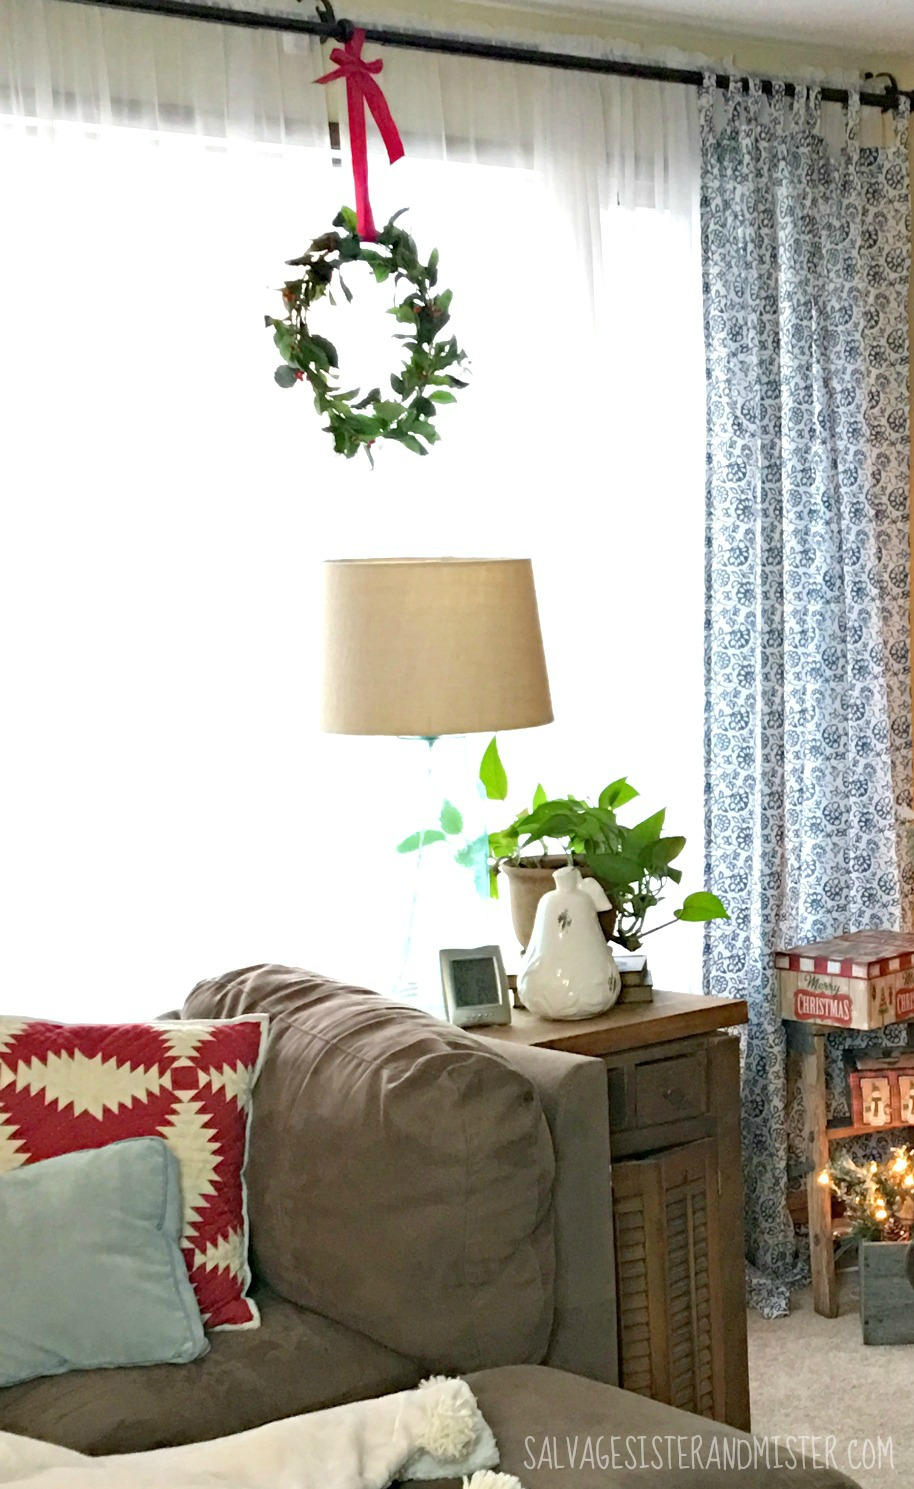 Salvaged Christmas Home Tour - Living Room - Salvage Sister and Mister